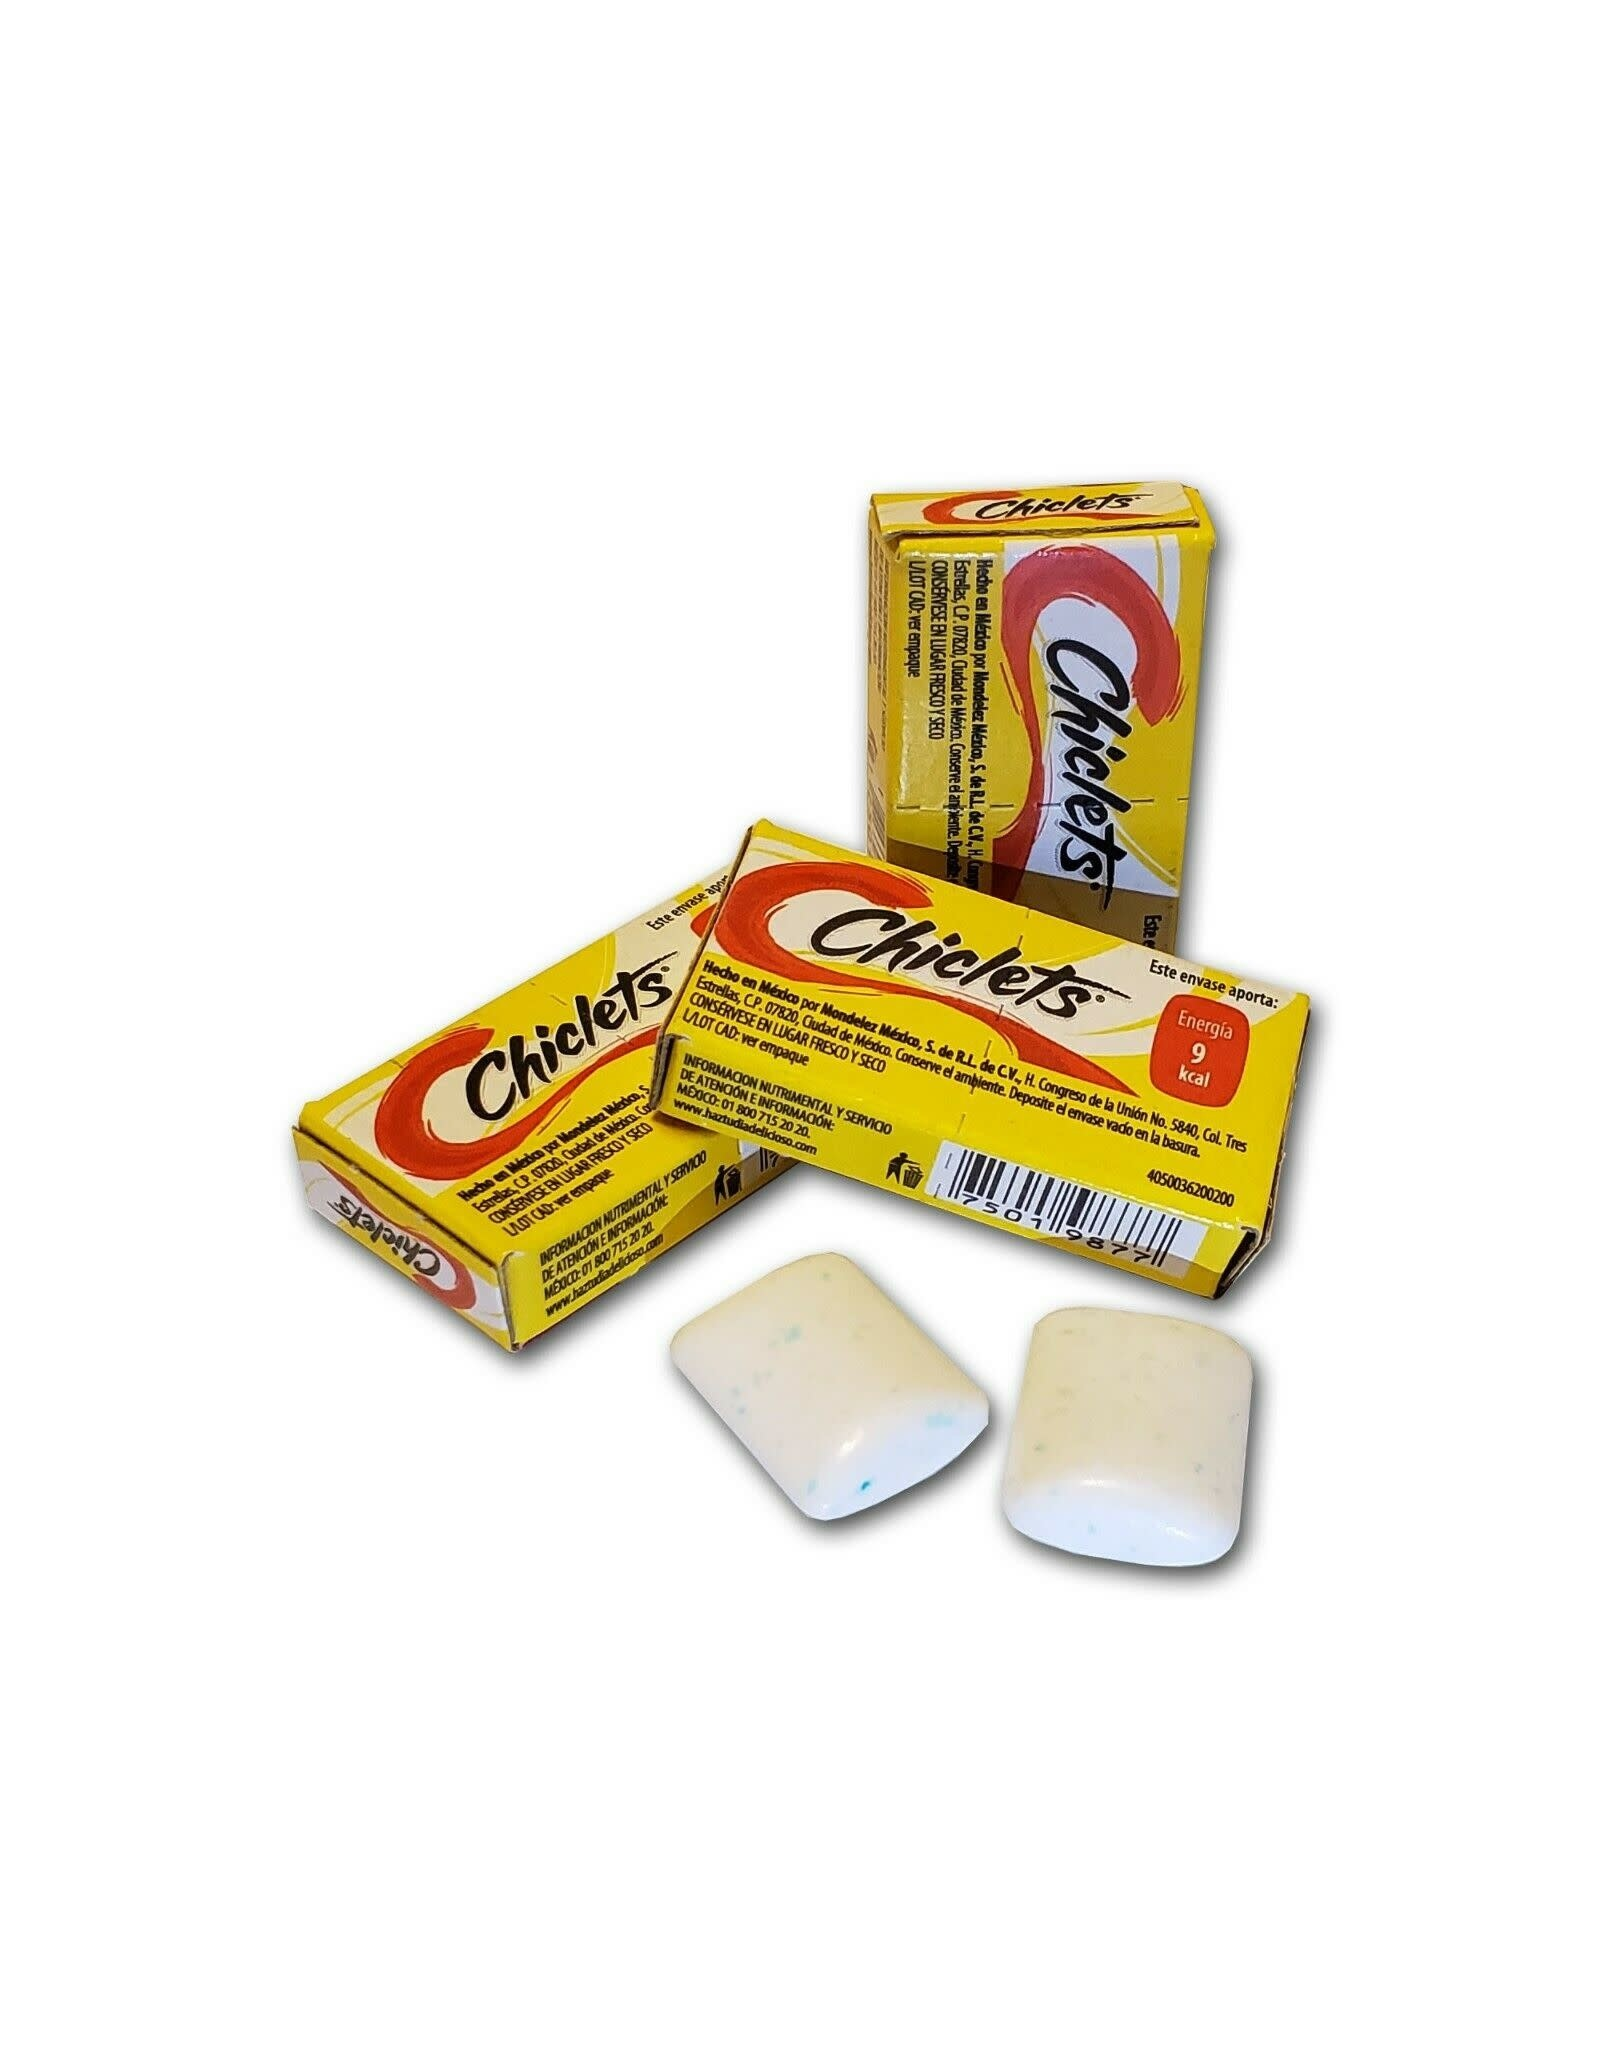 Chiclets 2 Piece Chewing Gum